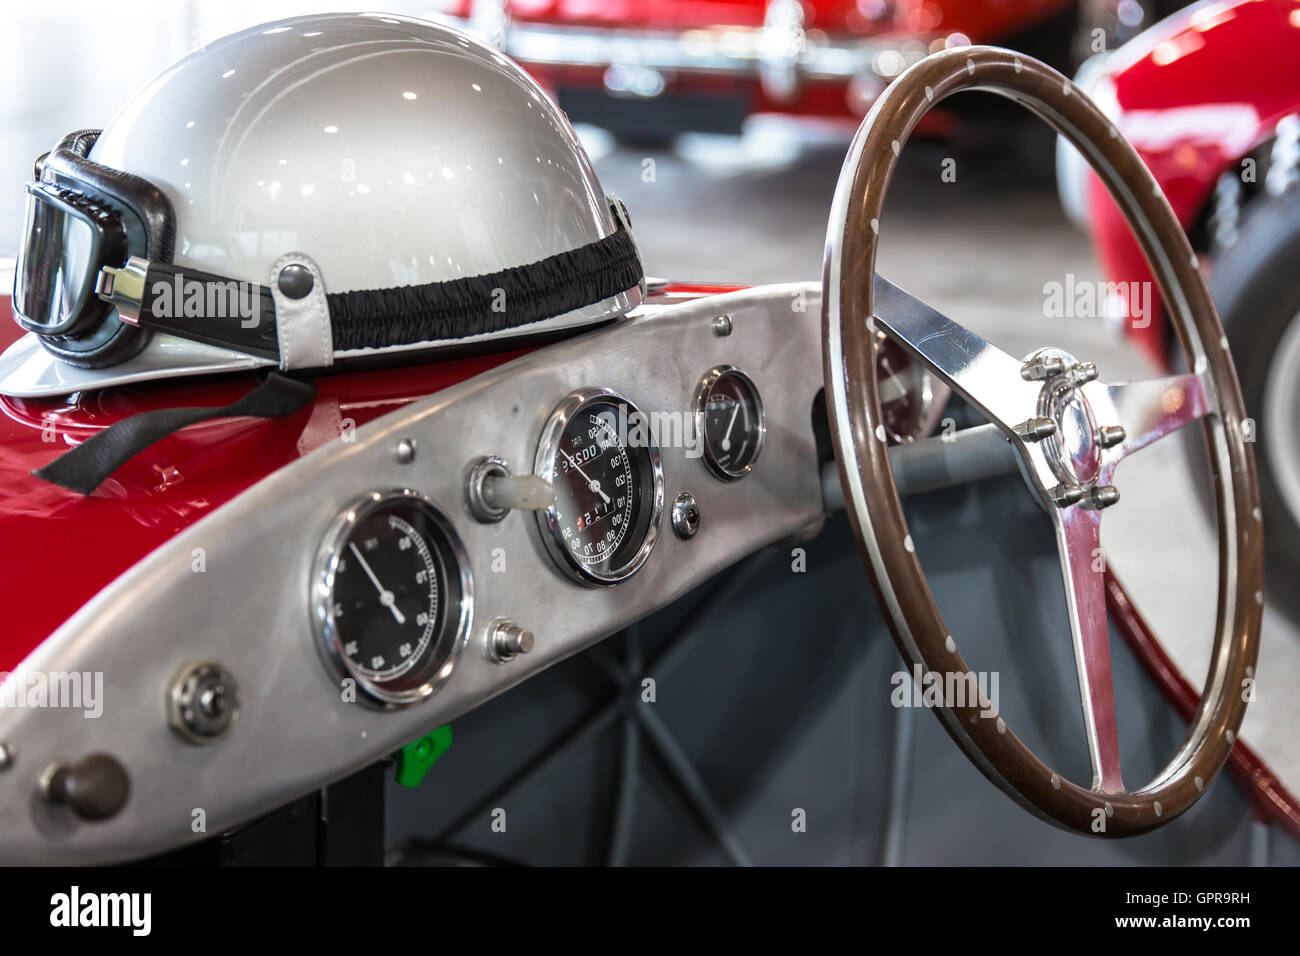 Helmet and glasses resting on a luxury convertible sports car. Stock Photo